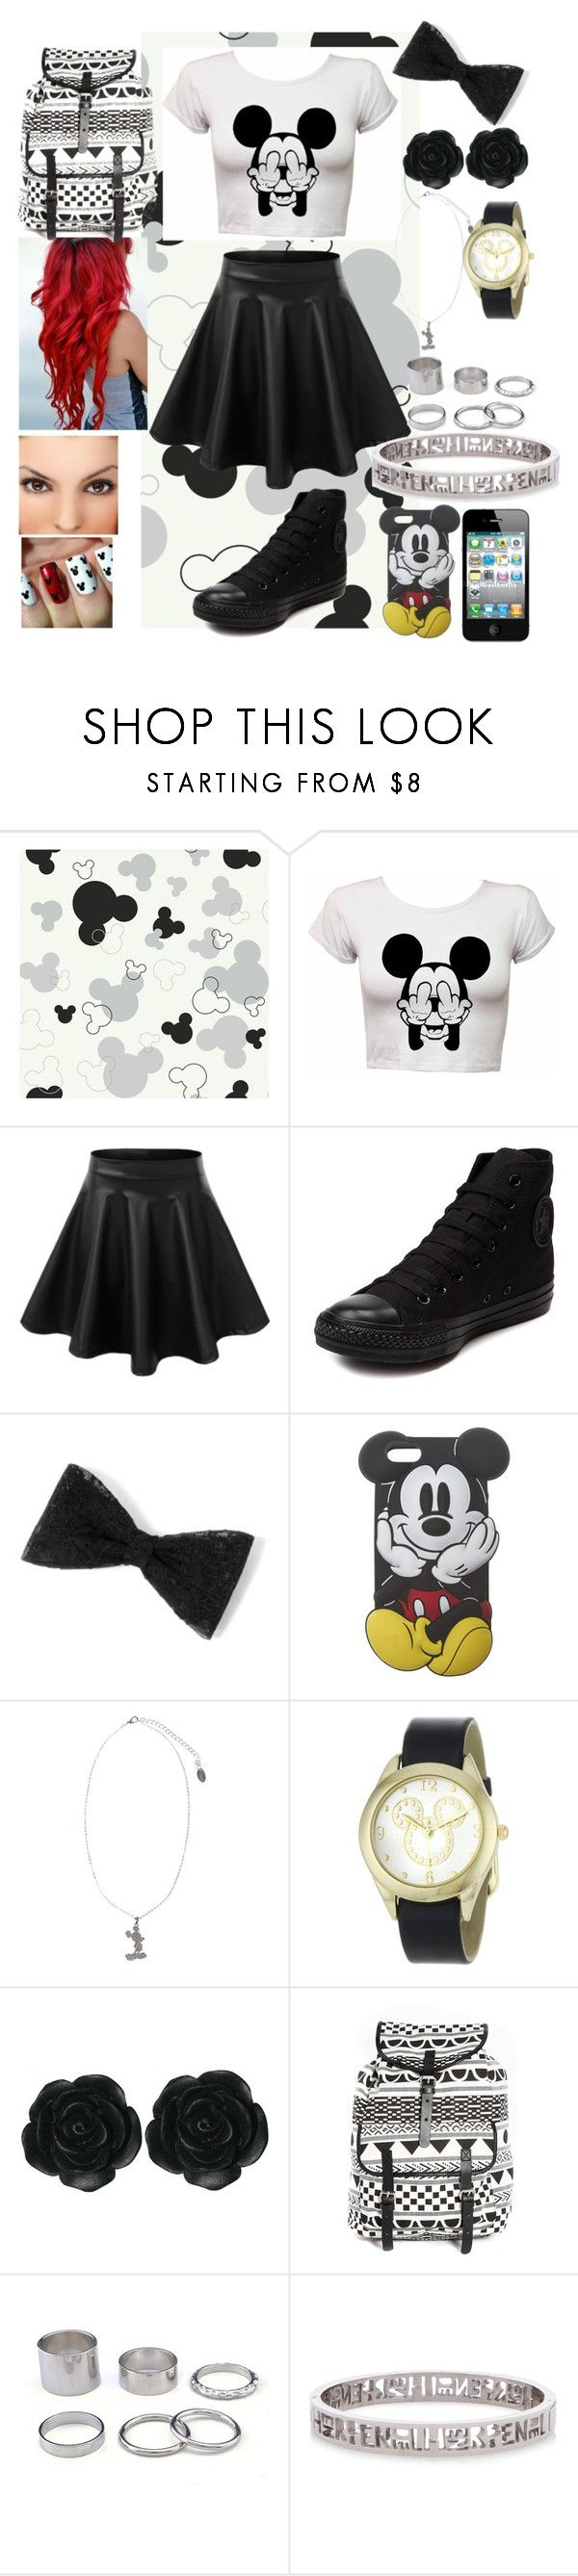 """Black & White Mickey Mouse"" by blackest-raven ❤ liked on Polyvore featuring LE3NO, Converse, Wet Seal, Disney Couture, Disney, Dollydagger, Monki and Henri Bendel"